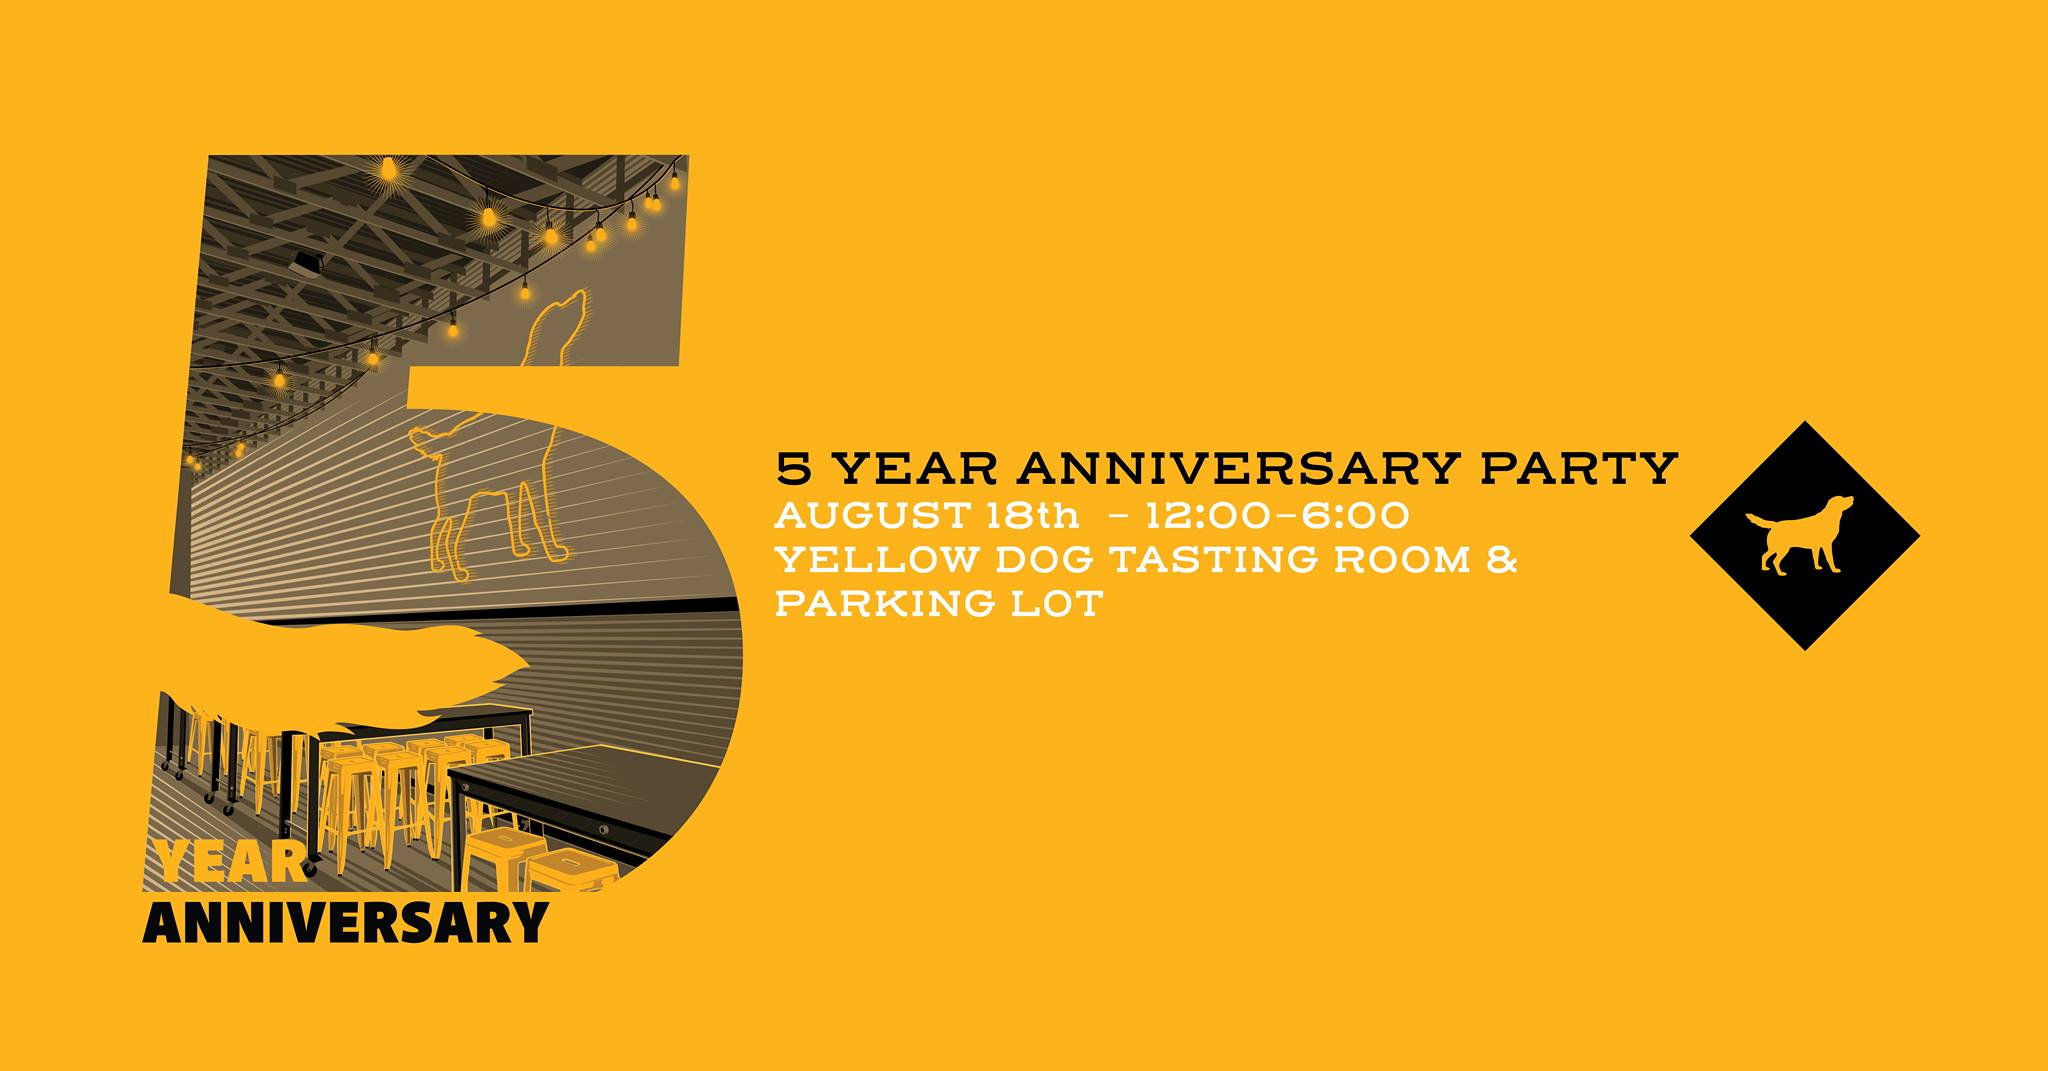 5 Year Anniversary Party